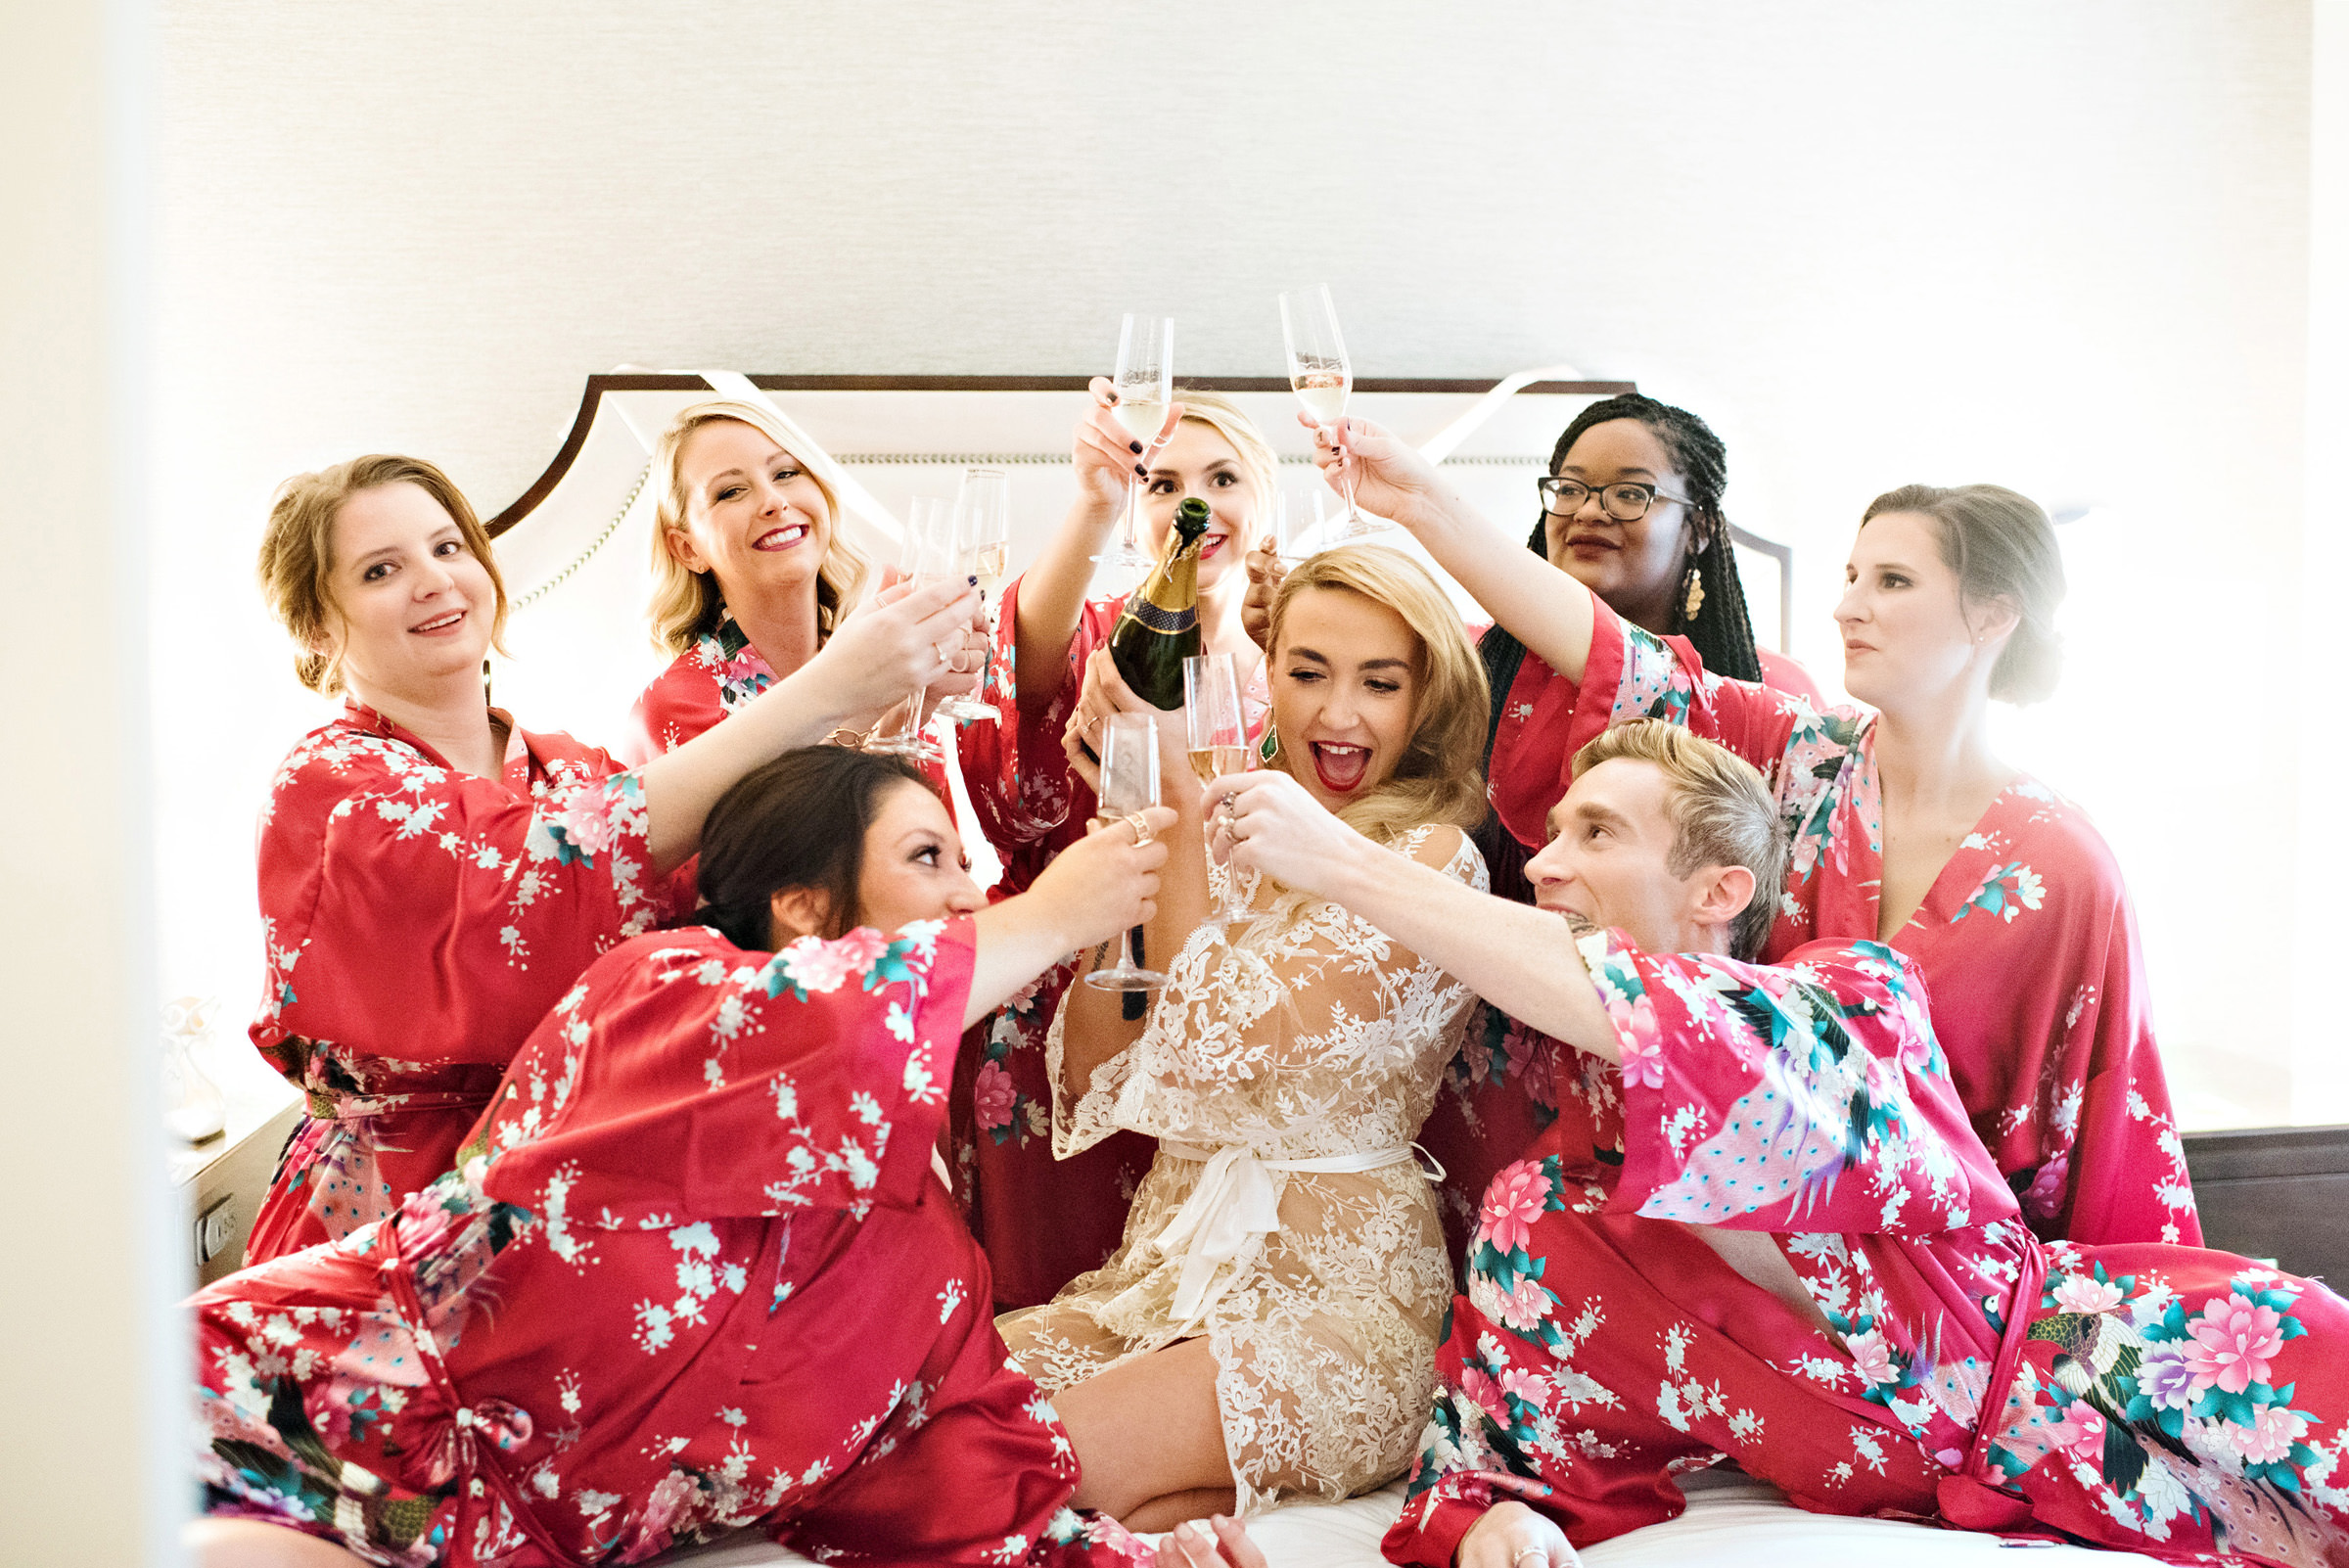 Passel of bridal party toasting bride - photo by Barbie Hull Photography